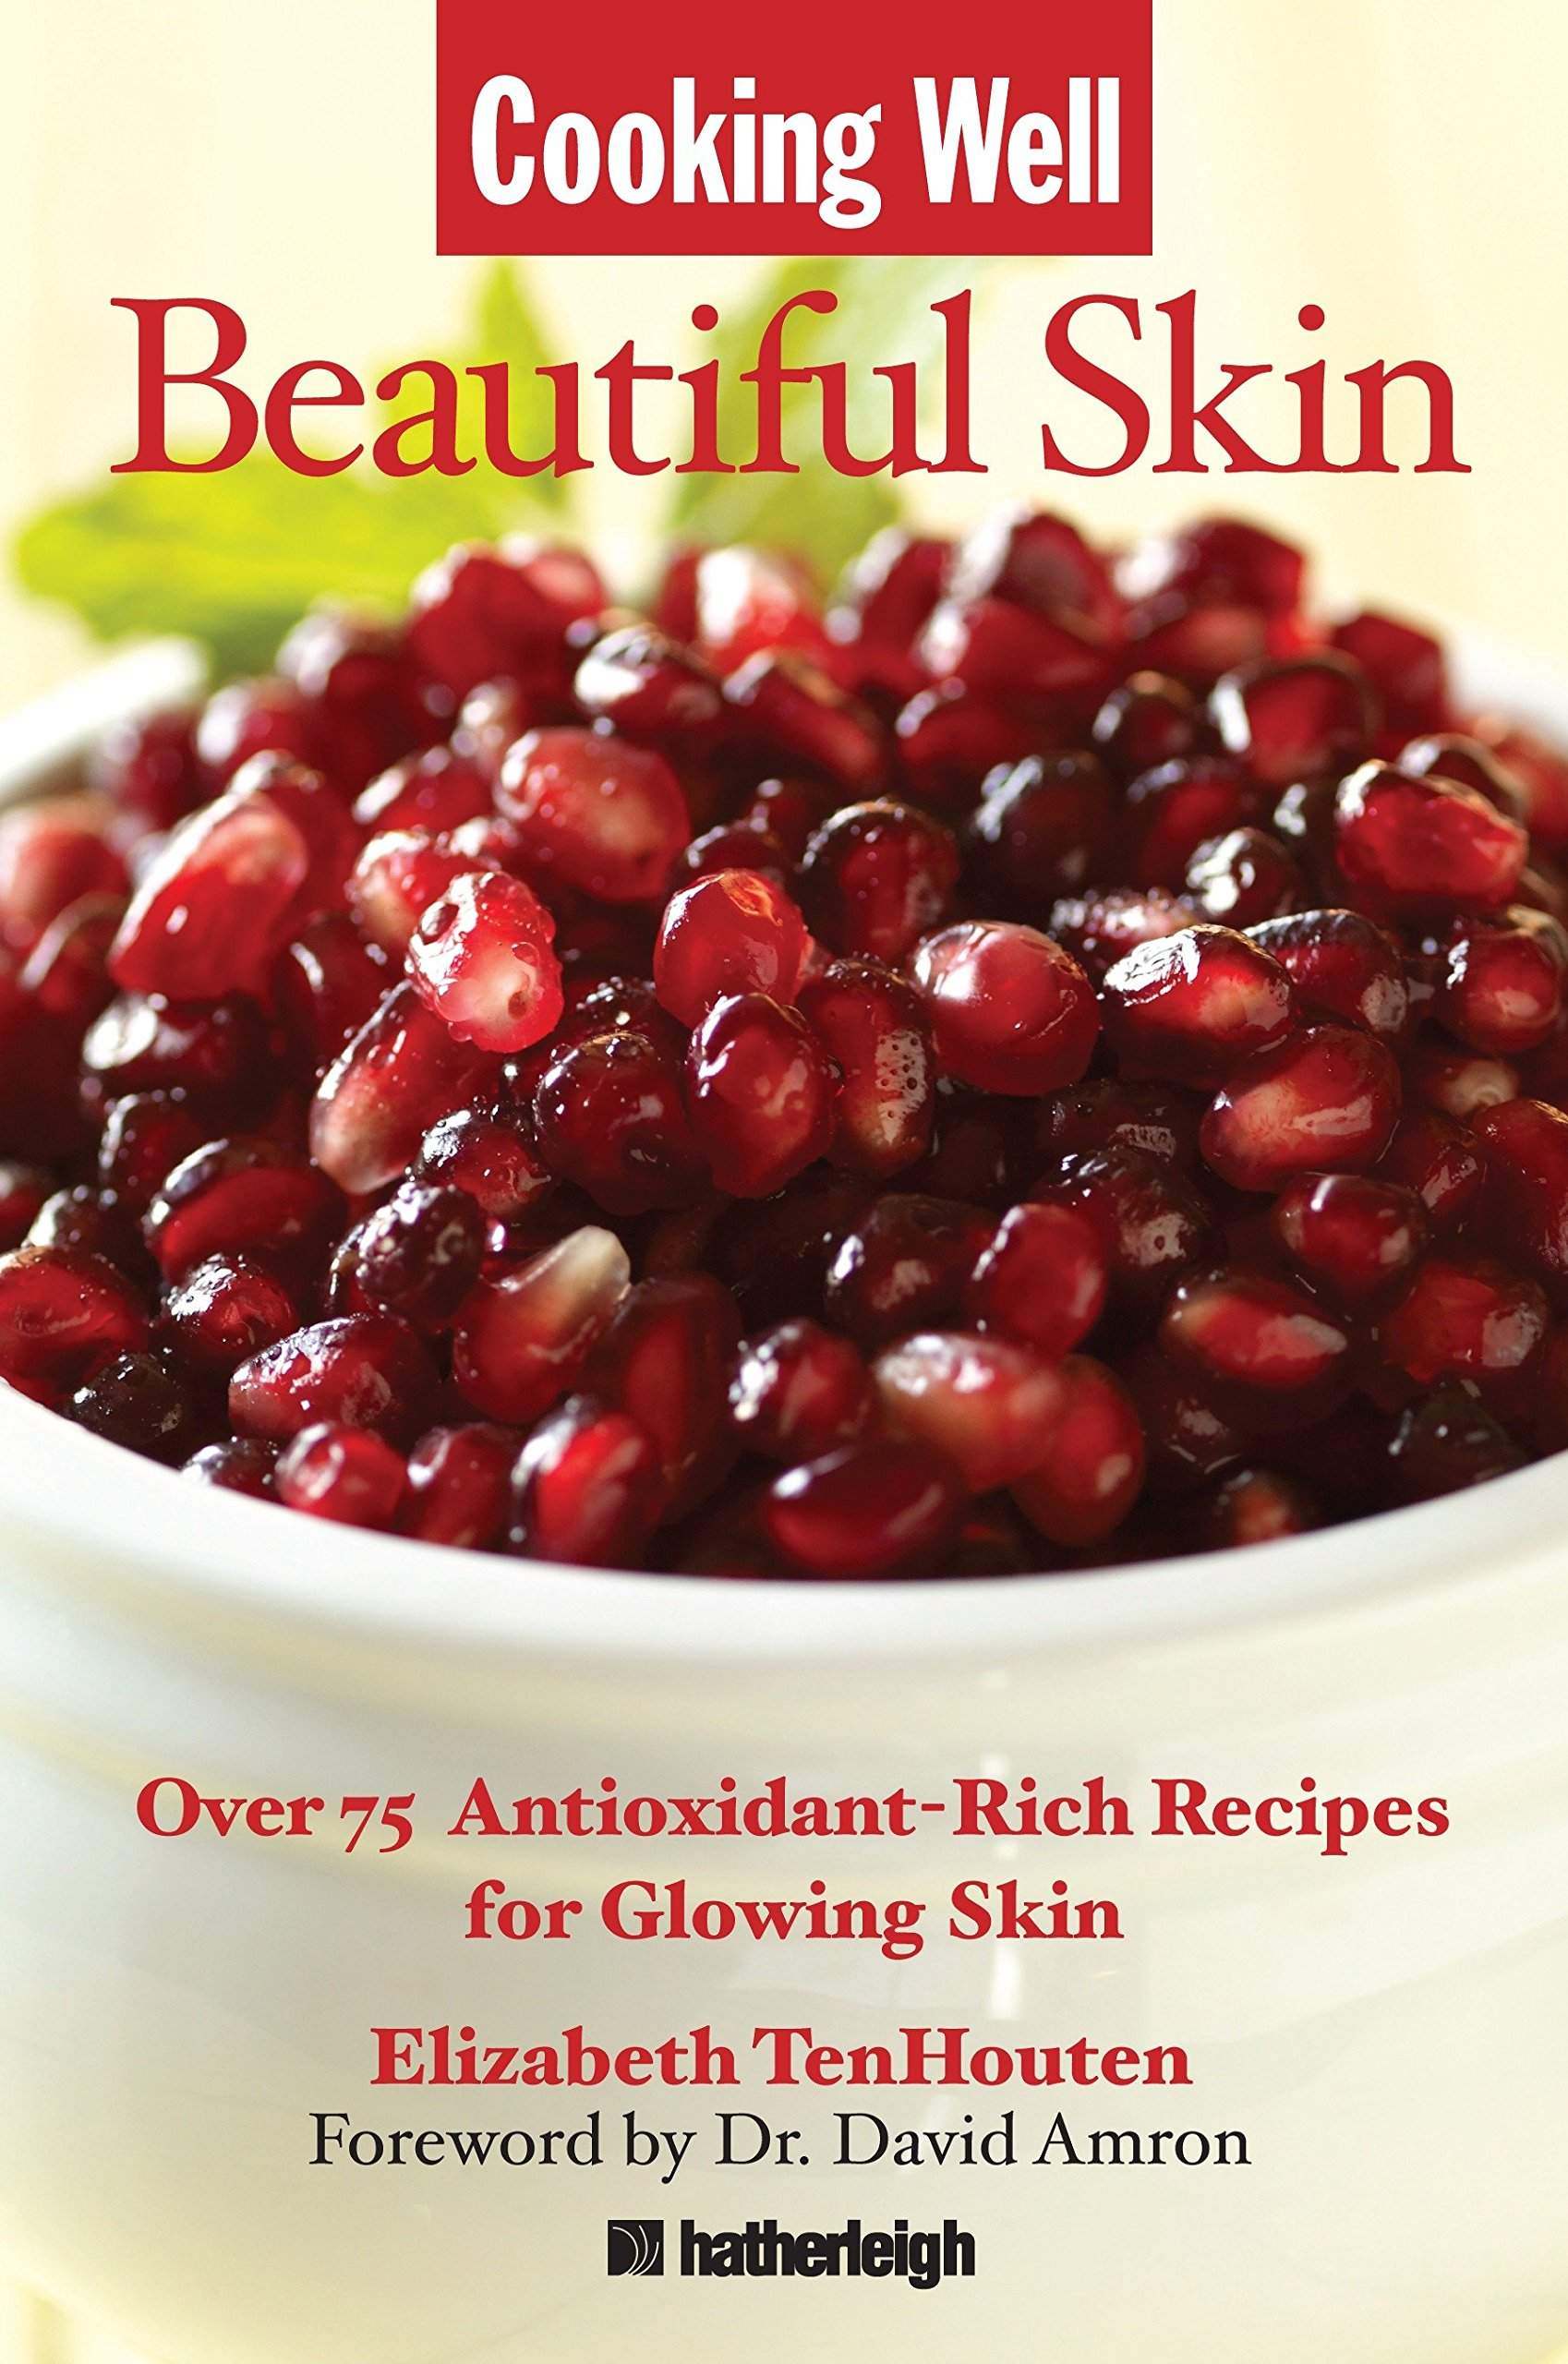 Cooking Well: Beautiful Skin: Over 75 Antioxidant-Rich Recipes for